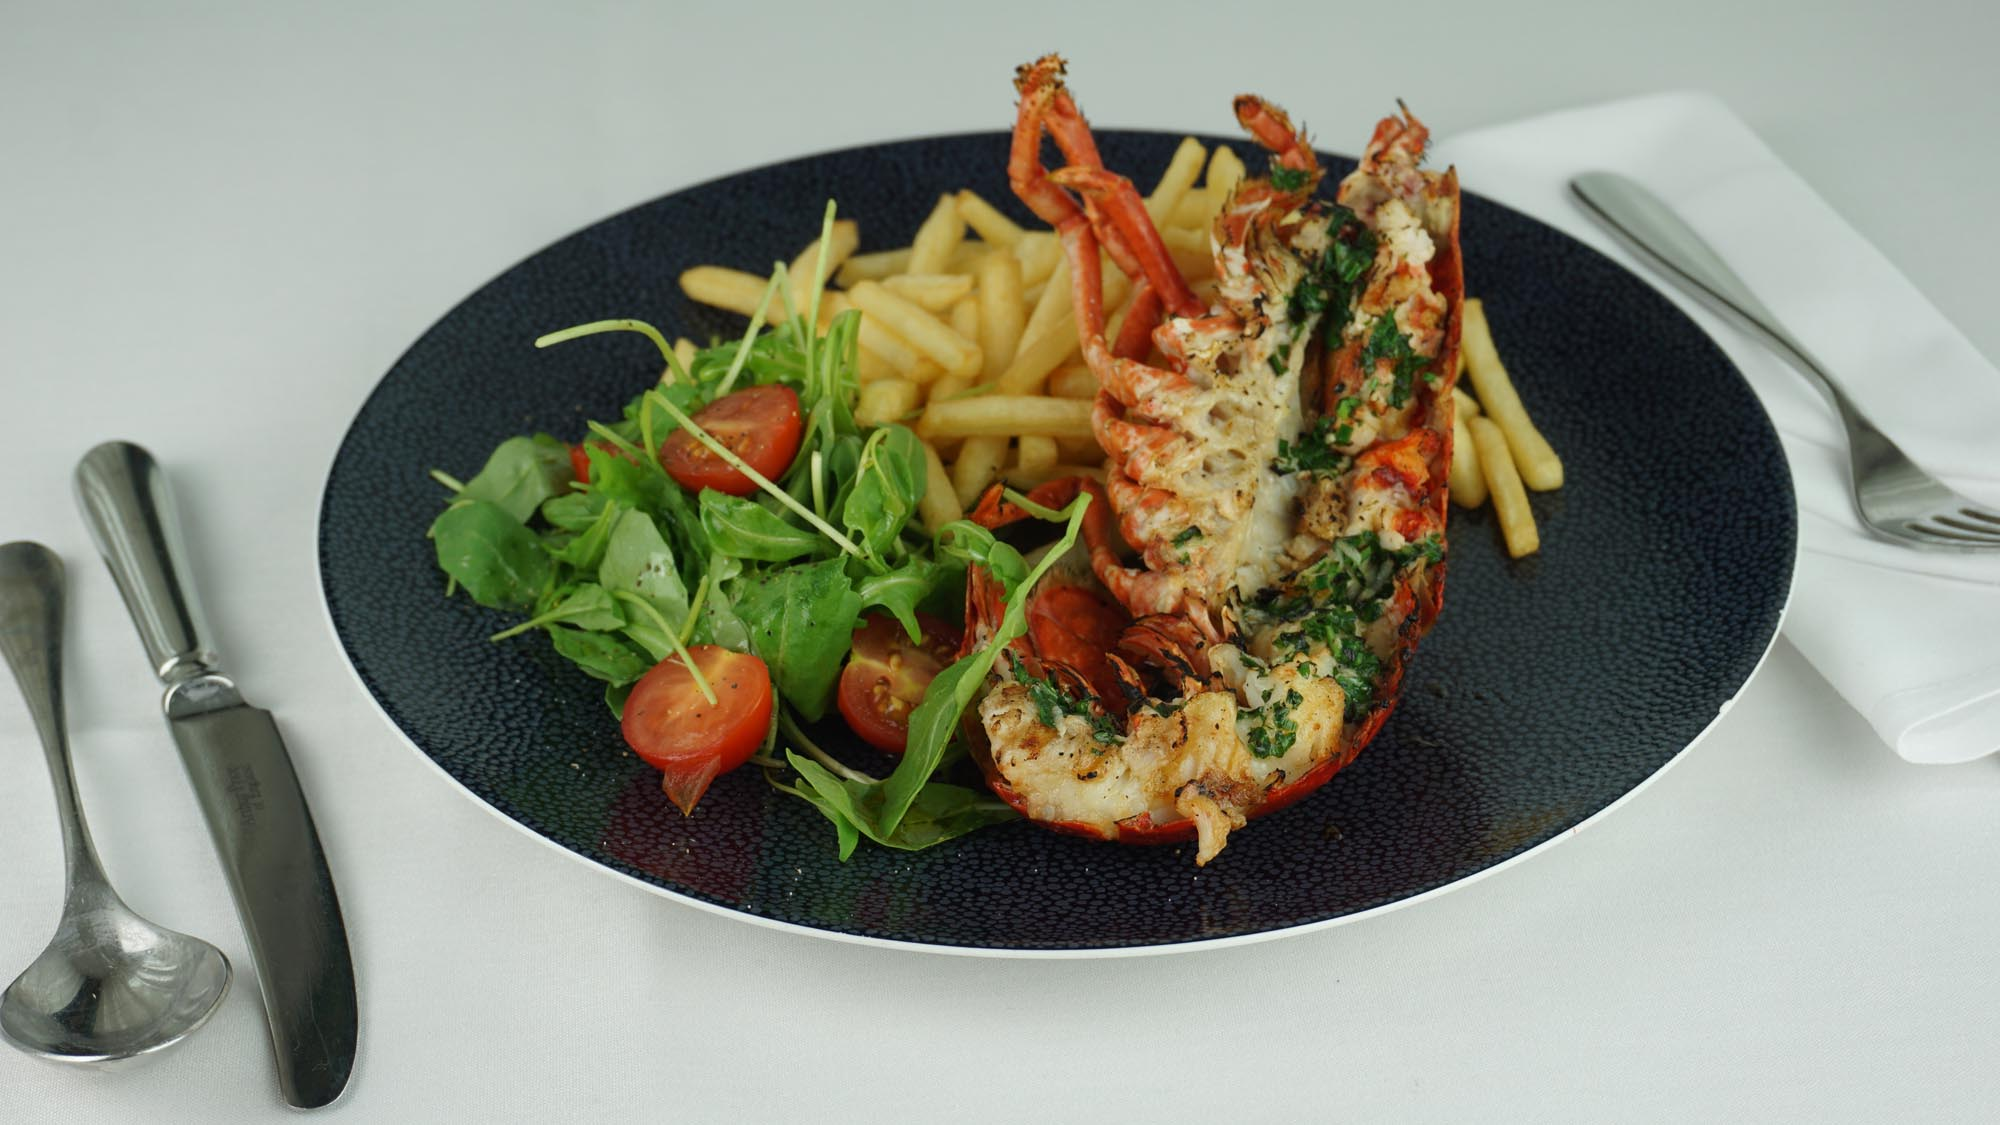 Half a grilled lobster with garlic butter, salad and fries